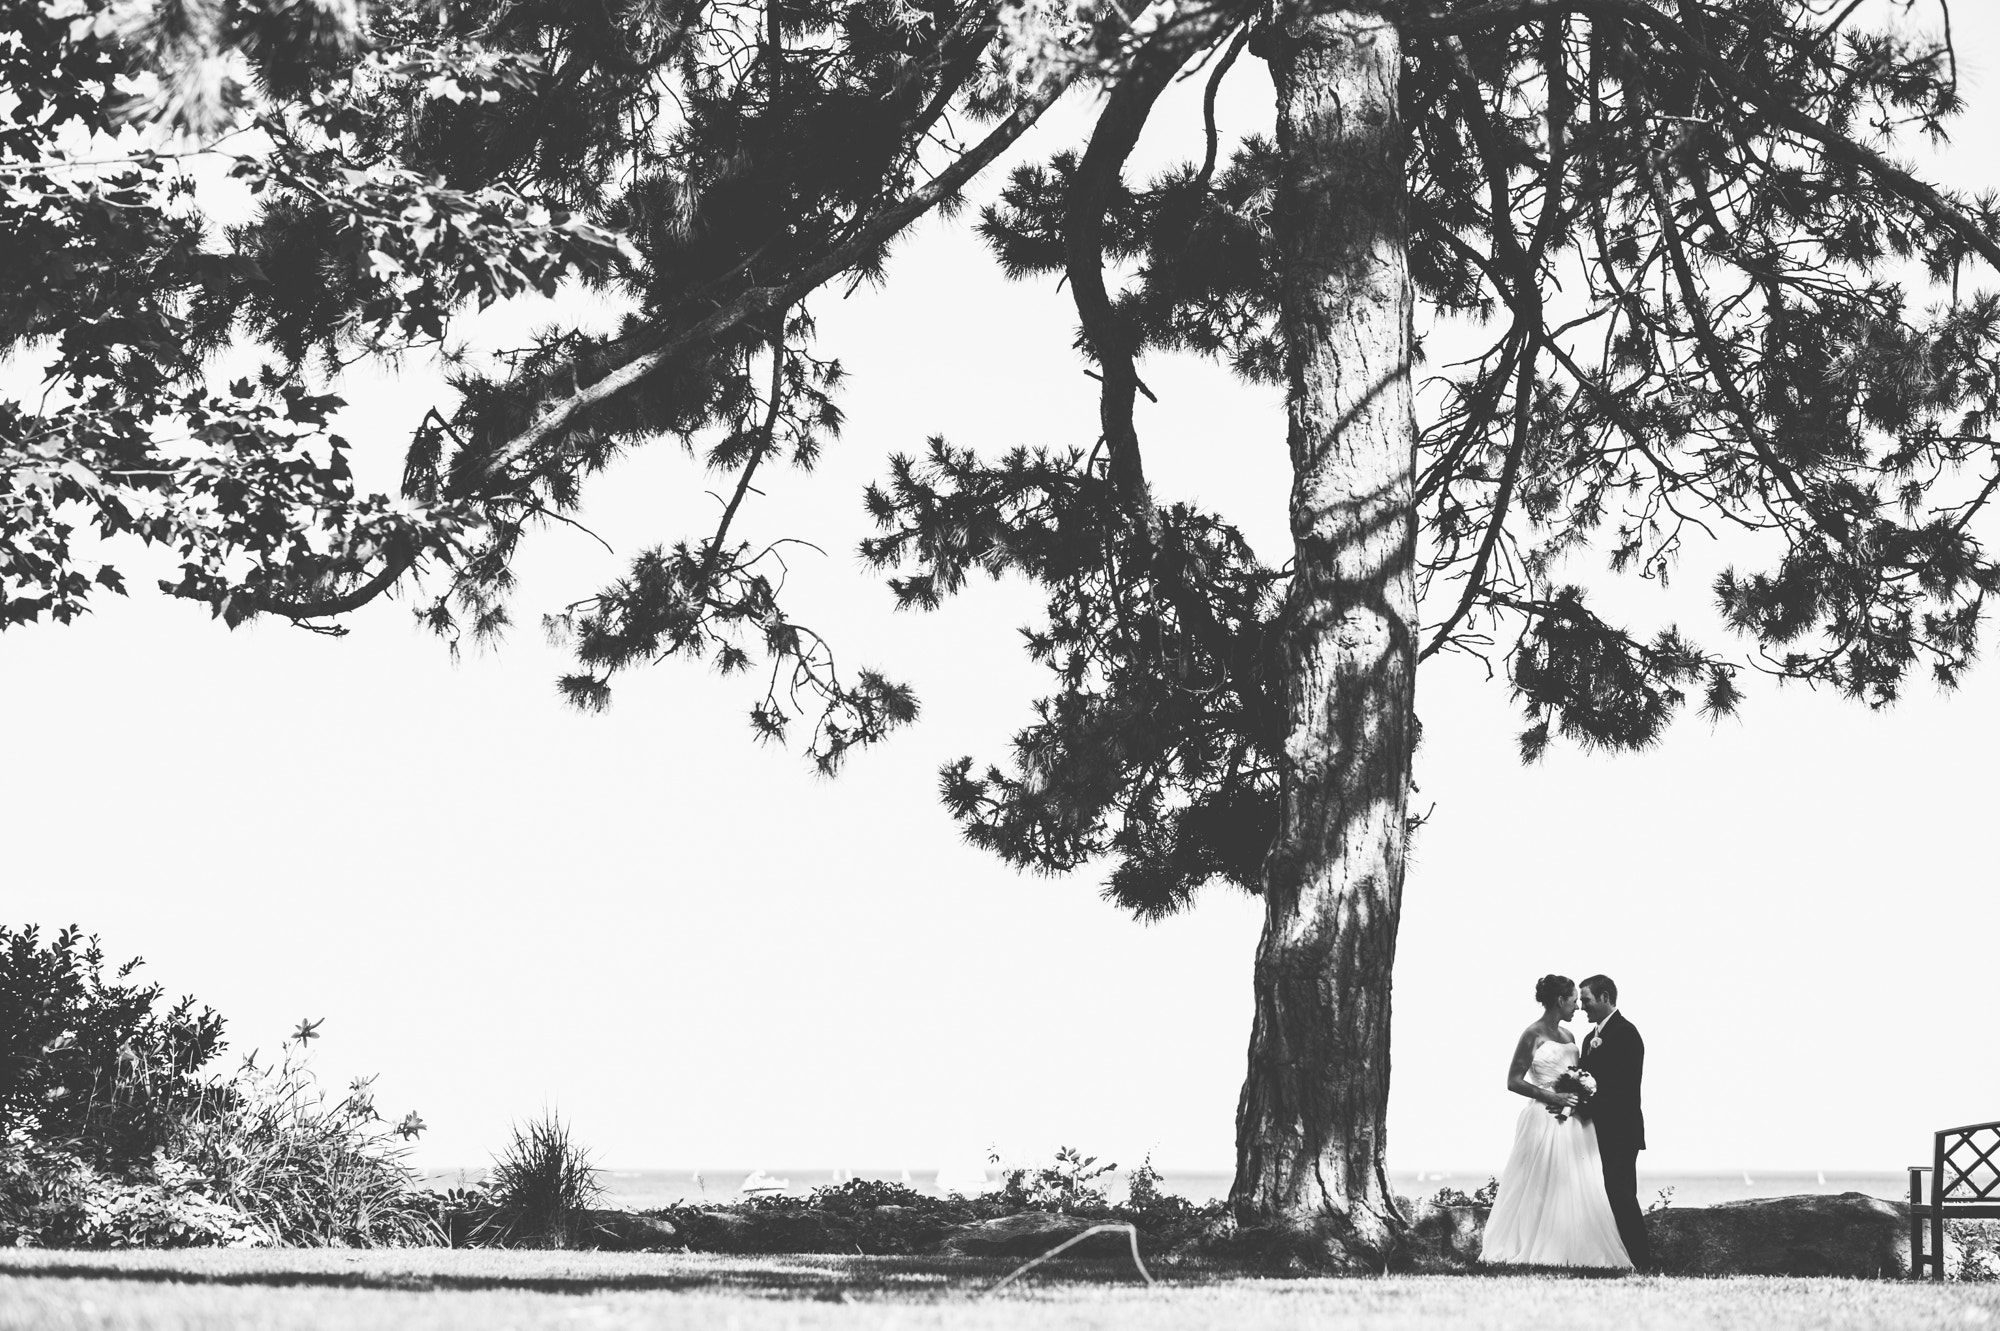 Photograph Under the Tree - BW by Mark Shannon on 500px